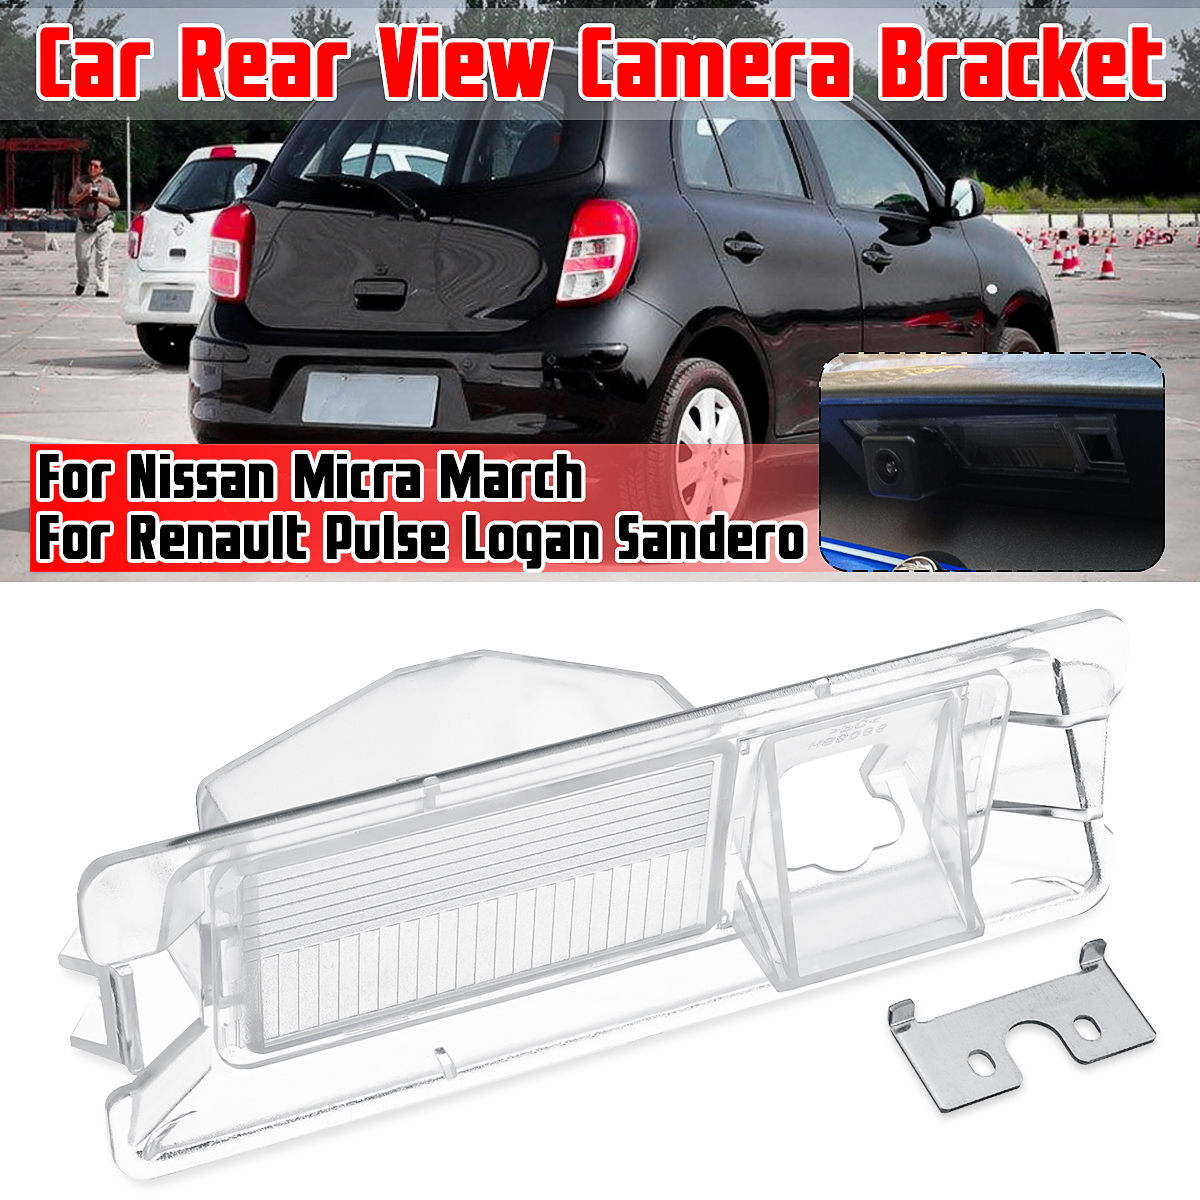 Car Parking Rear View Camera Bracket License Plate Cover Case Housing For Nissan Micra March For Renault Pulse Logan Sandero